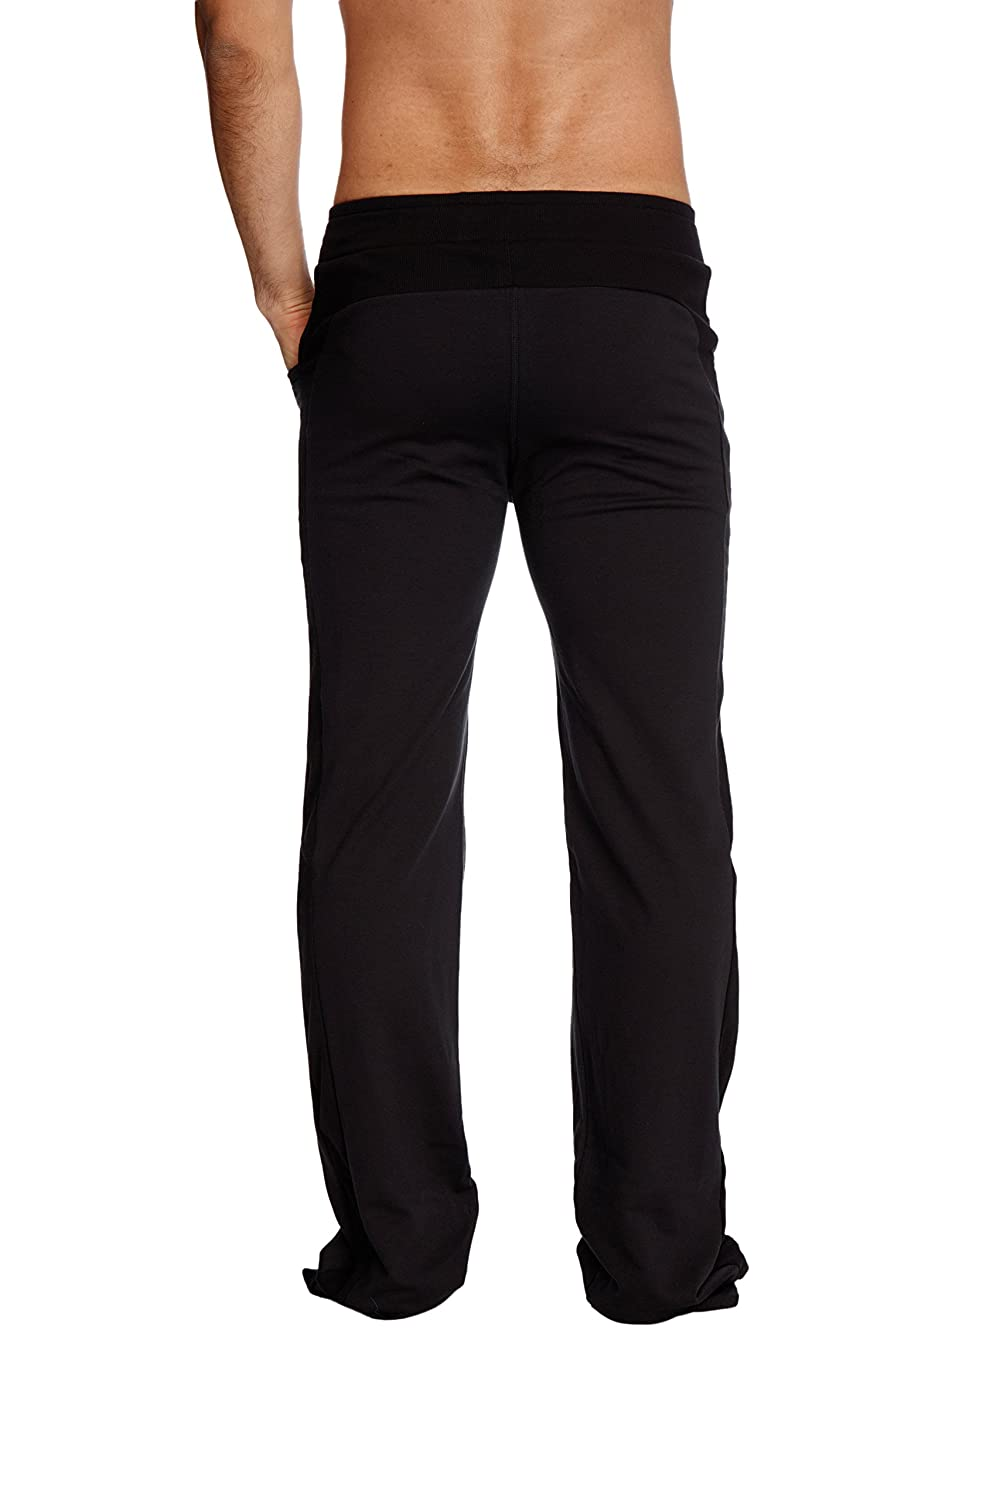 95a0b716e5c4c 4-rth Men's Eco-Track Pant at Amazon Men's Clothing store: